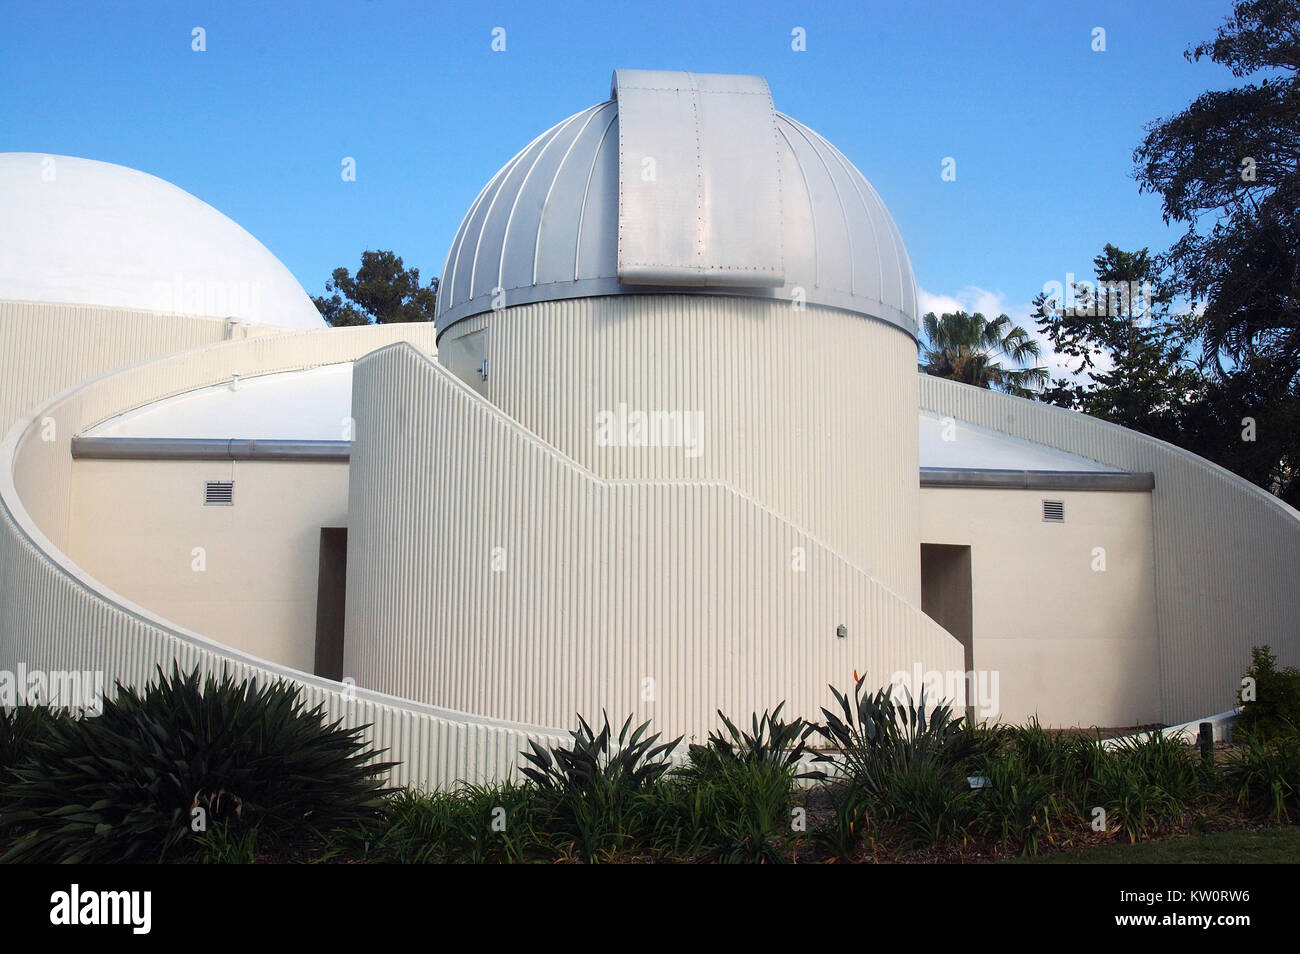 BRISBANE, AUSTRALIA, SEPTEMBER 28, 2008: Planetarium at Brisbane Botanical Gardens,  September 28, 2008, Brisbane, - Stock Image